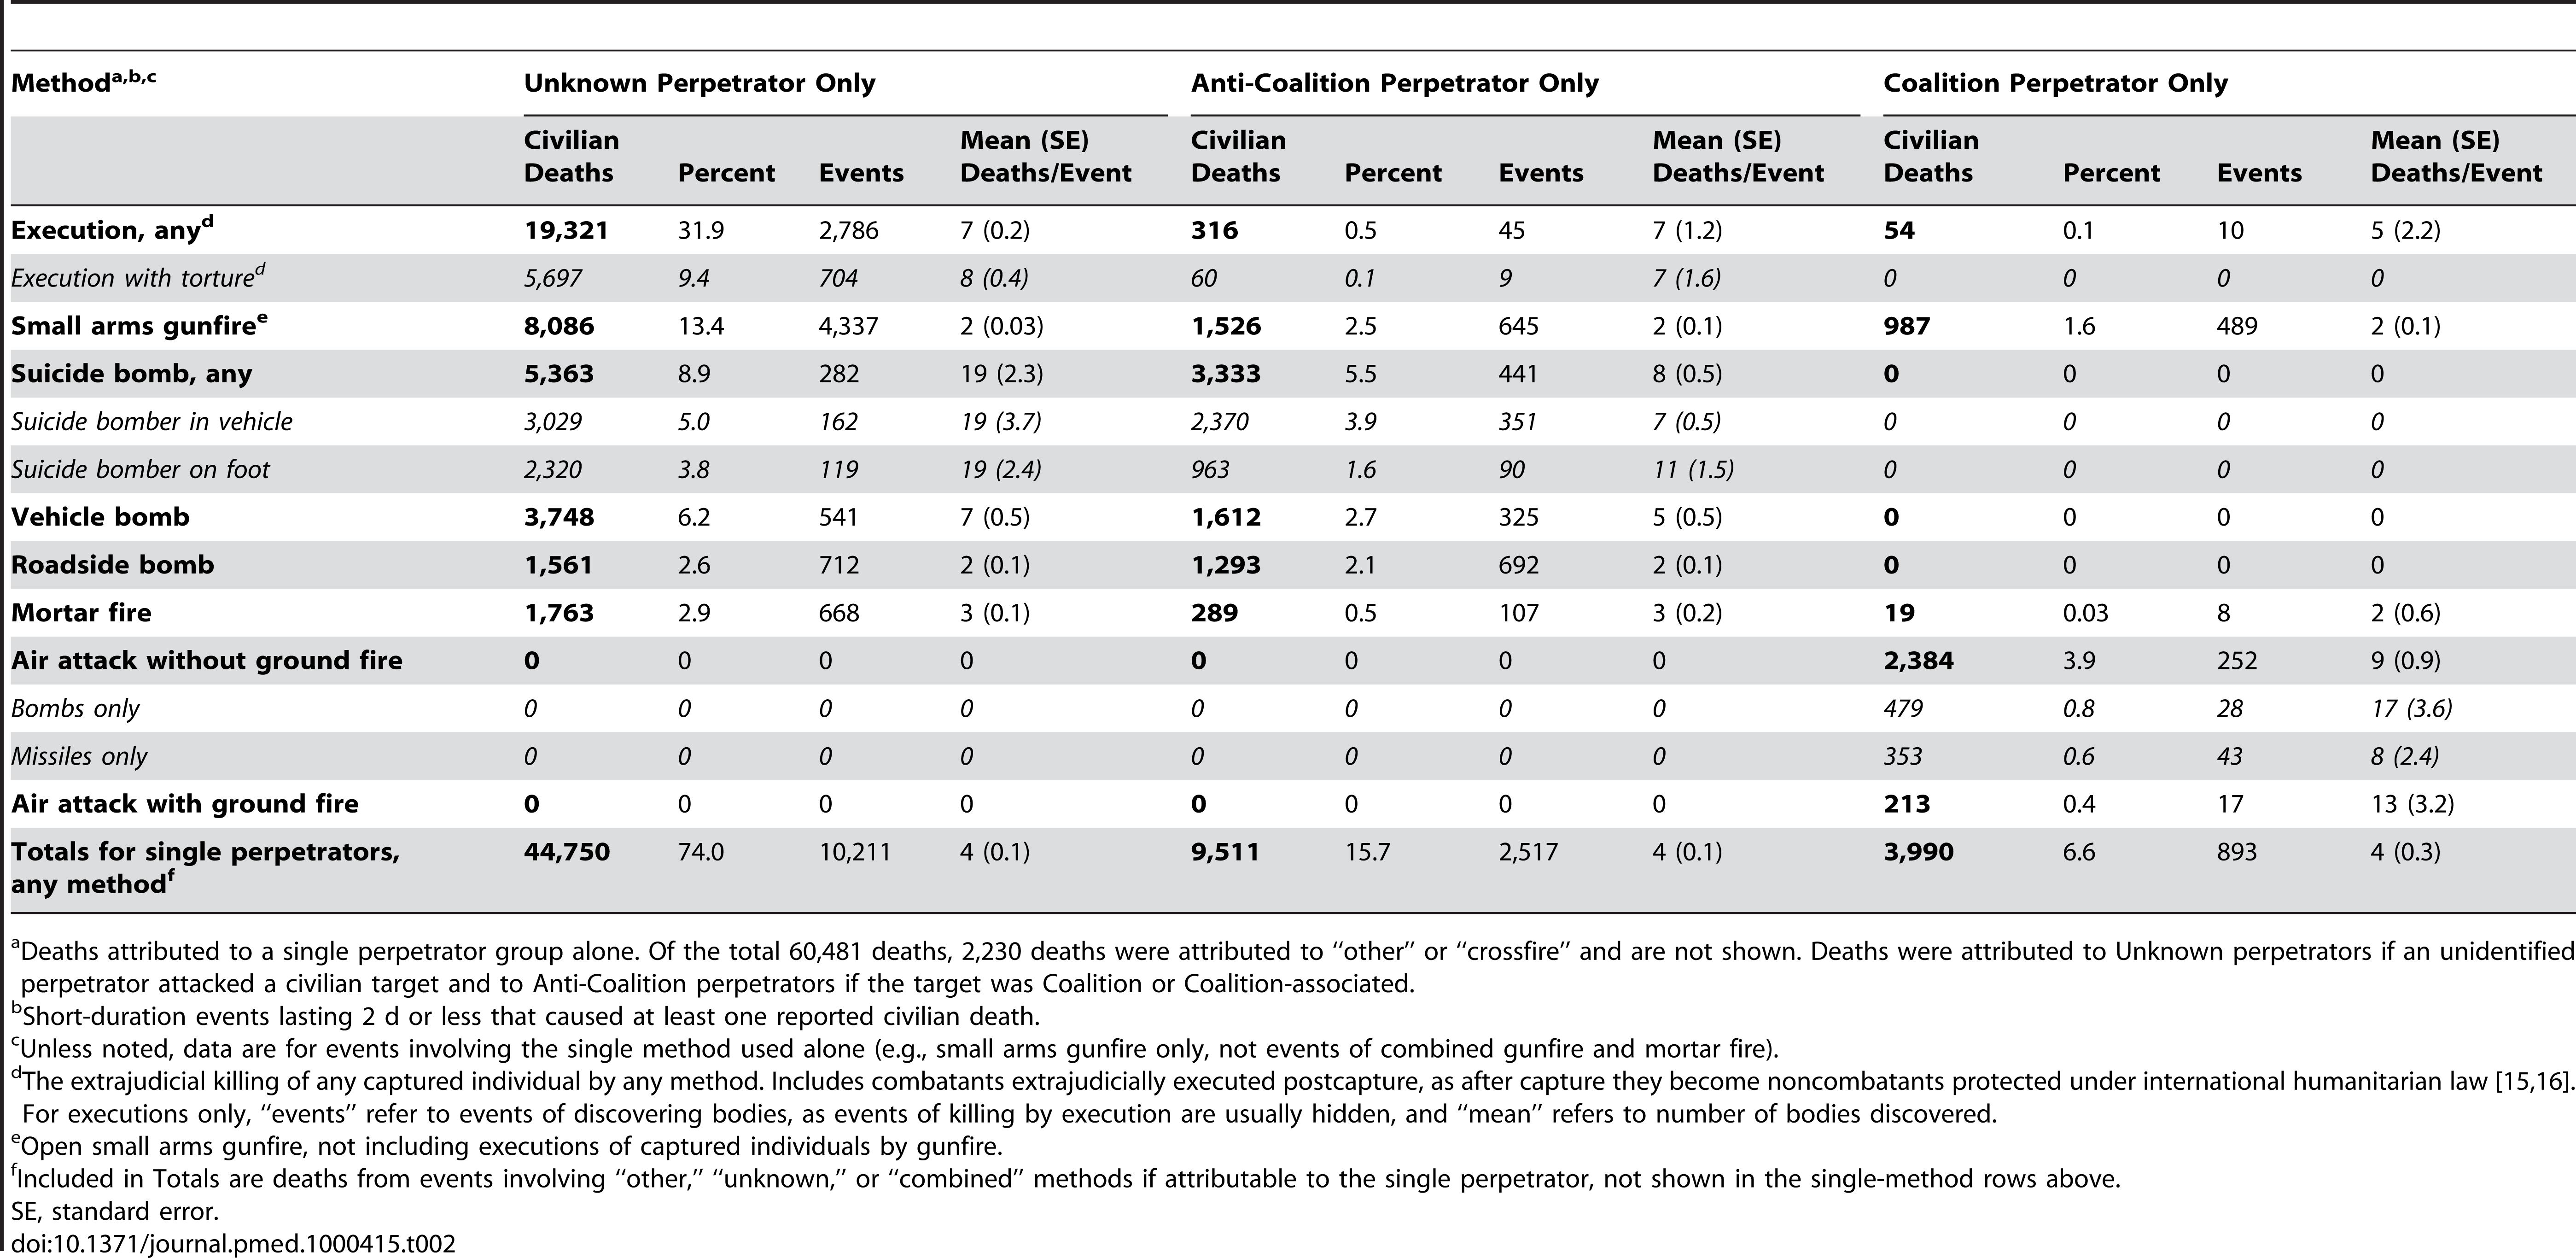 Iraqi civilian deaths from perpetrators using particular methods: analysis of 60,481 deaths from 14,196 events of short-duration armed violence, March 20, 2003 through March 19, 2008.